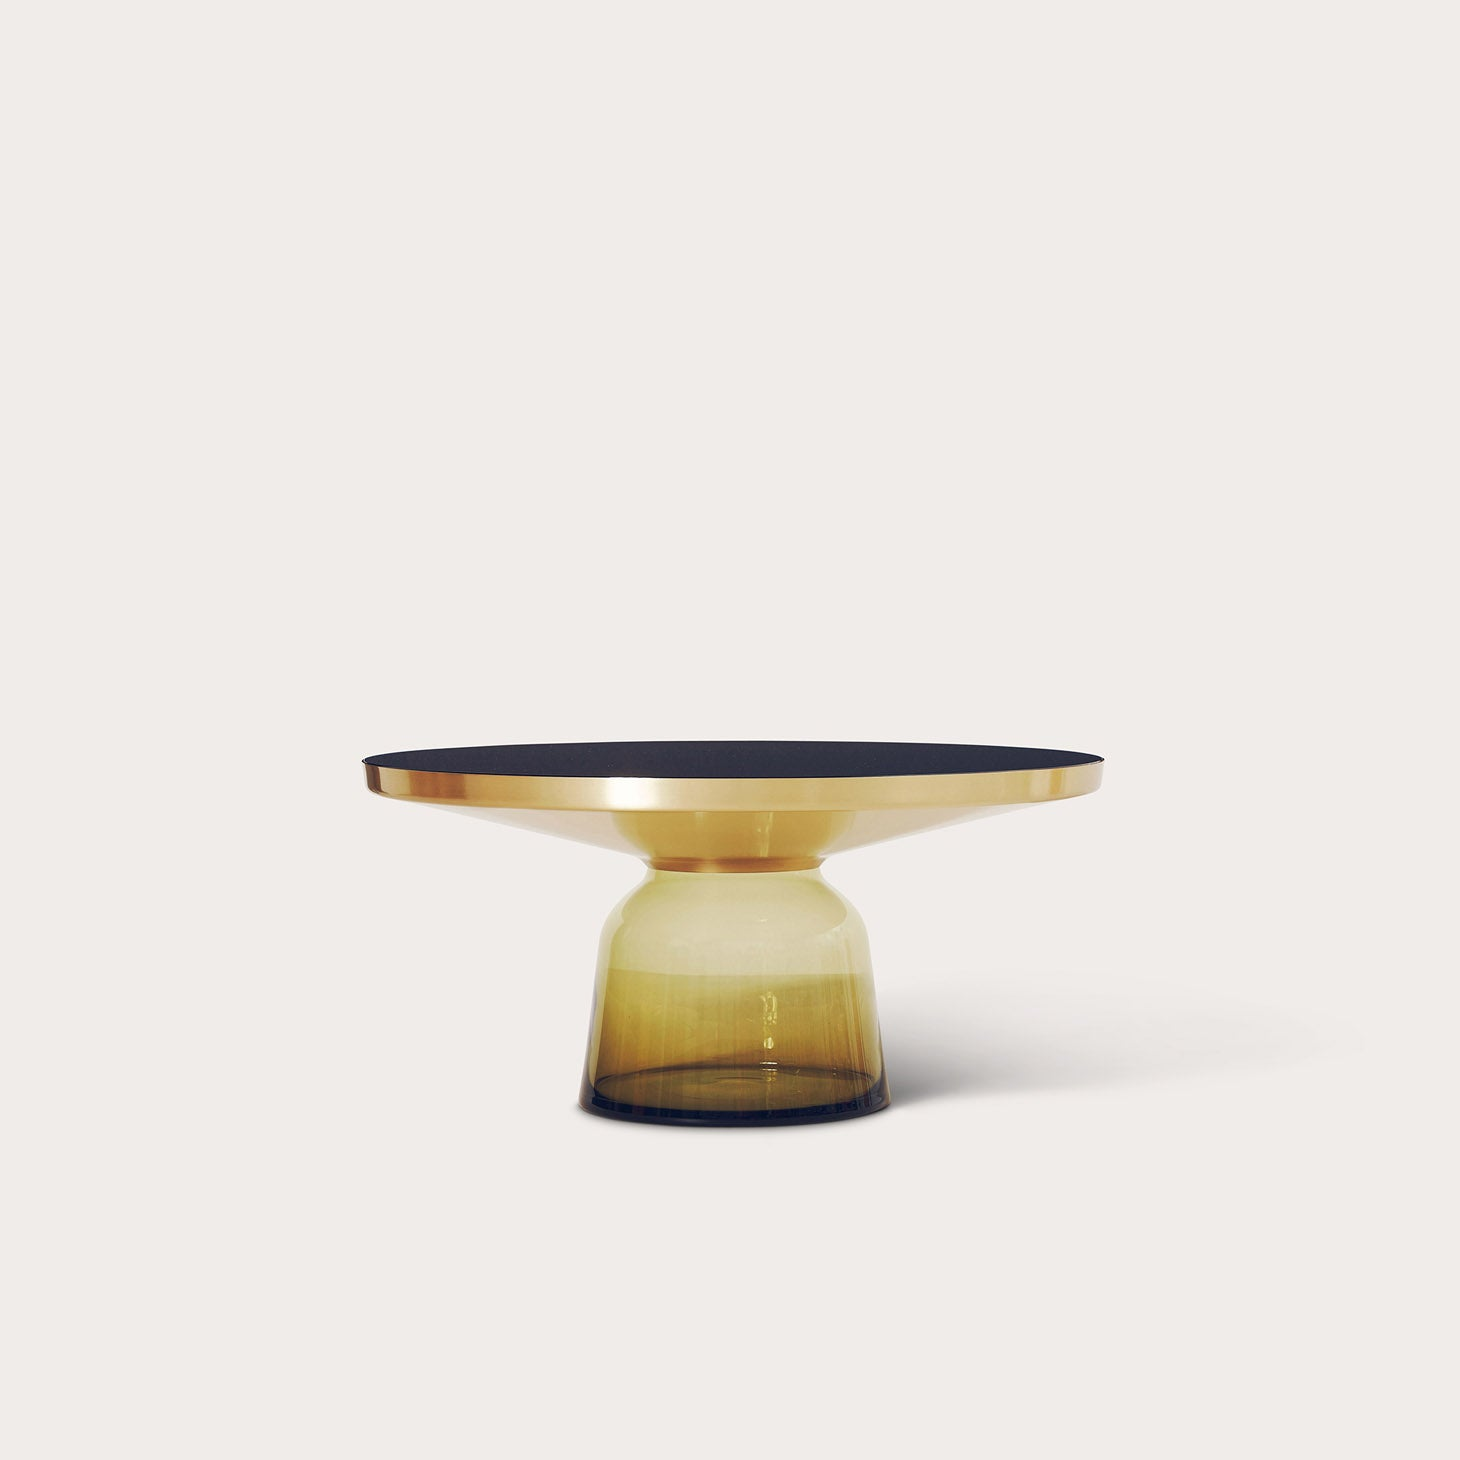 Bell Table Tables Sebastian Herkner Designer Furniture Sku: 001-230-10168